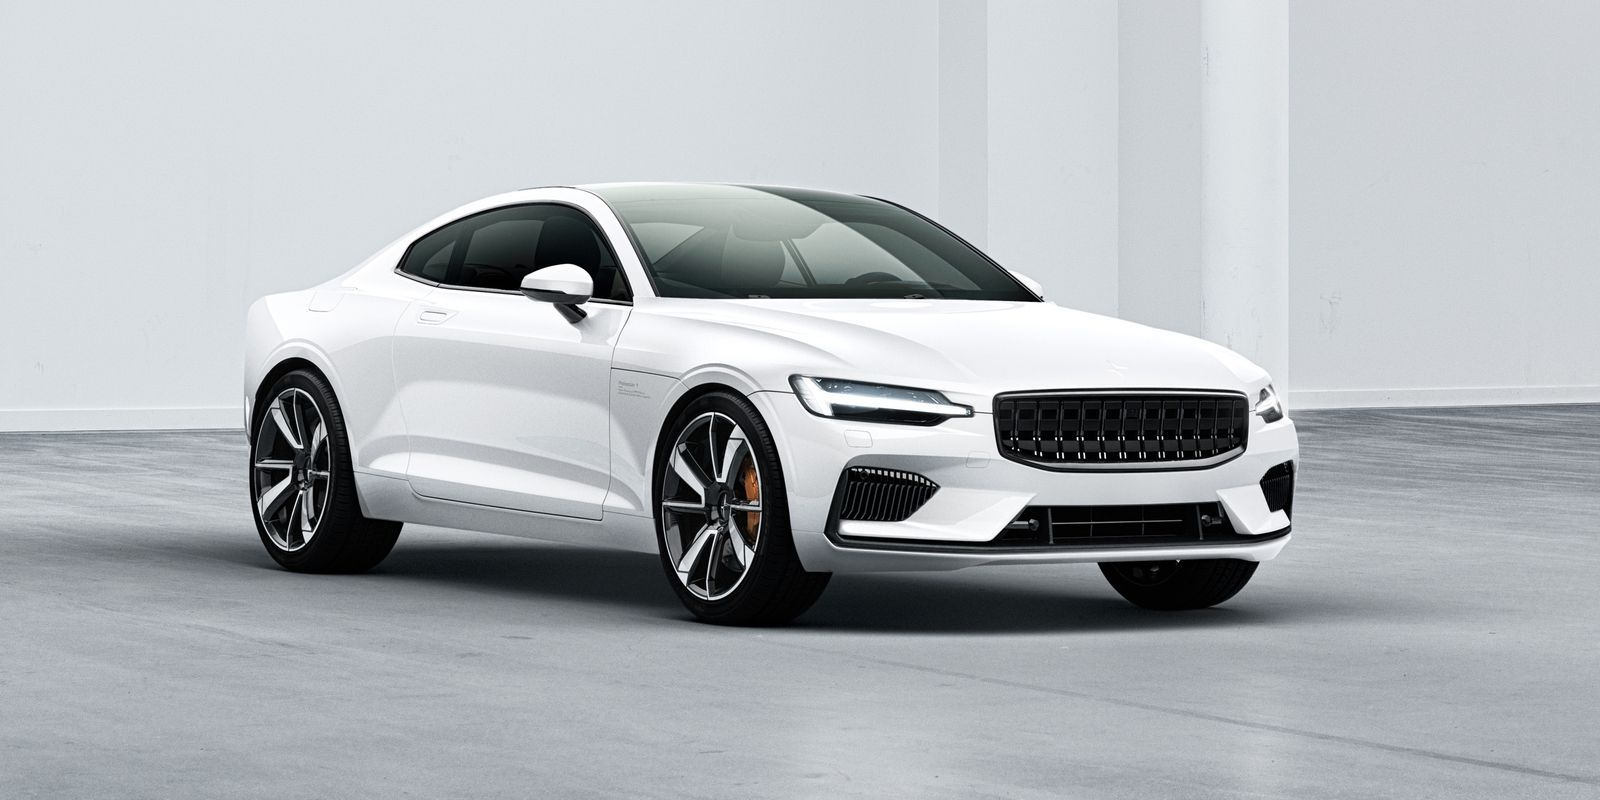 The 2020 Polestar 1 Is a VolvoBased 600HP